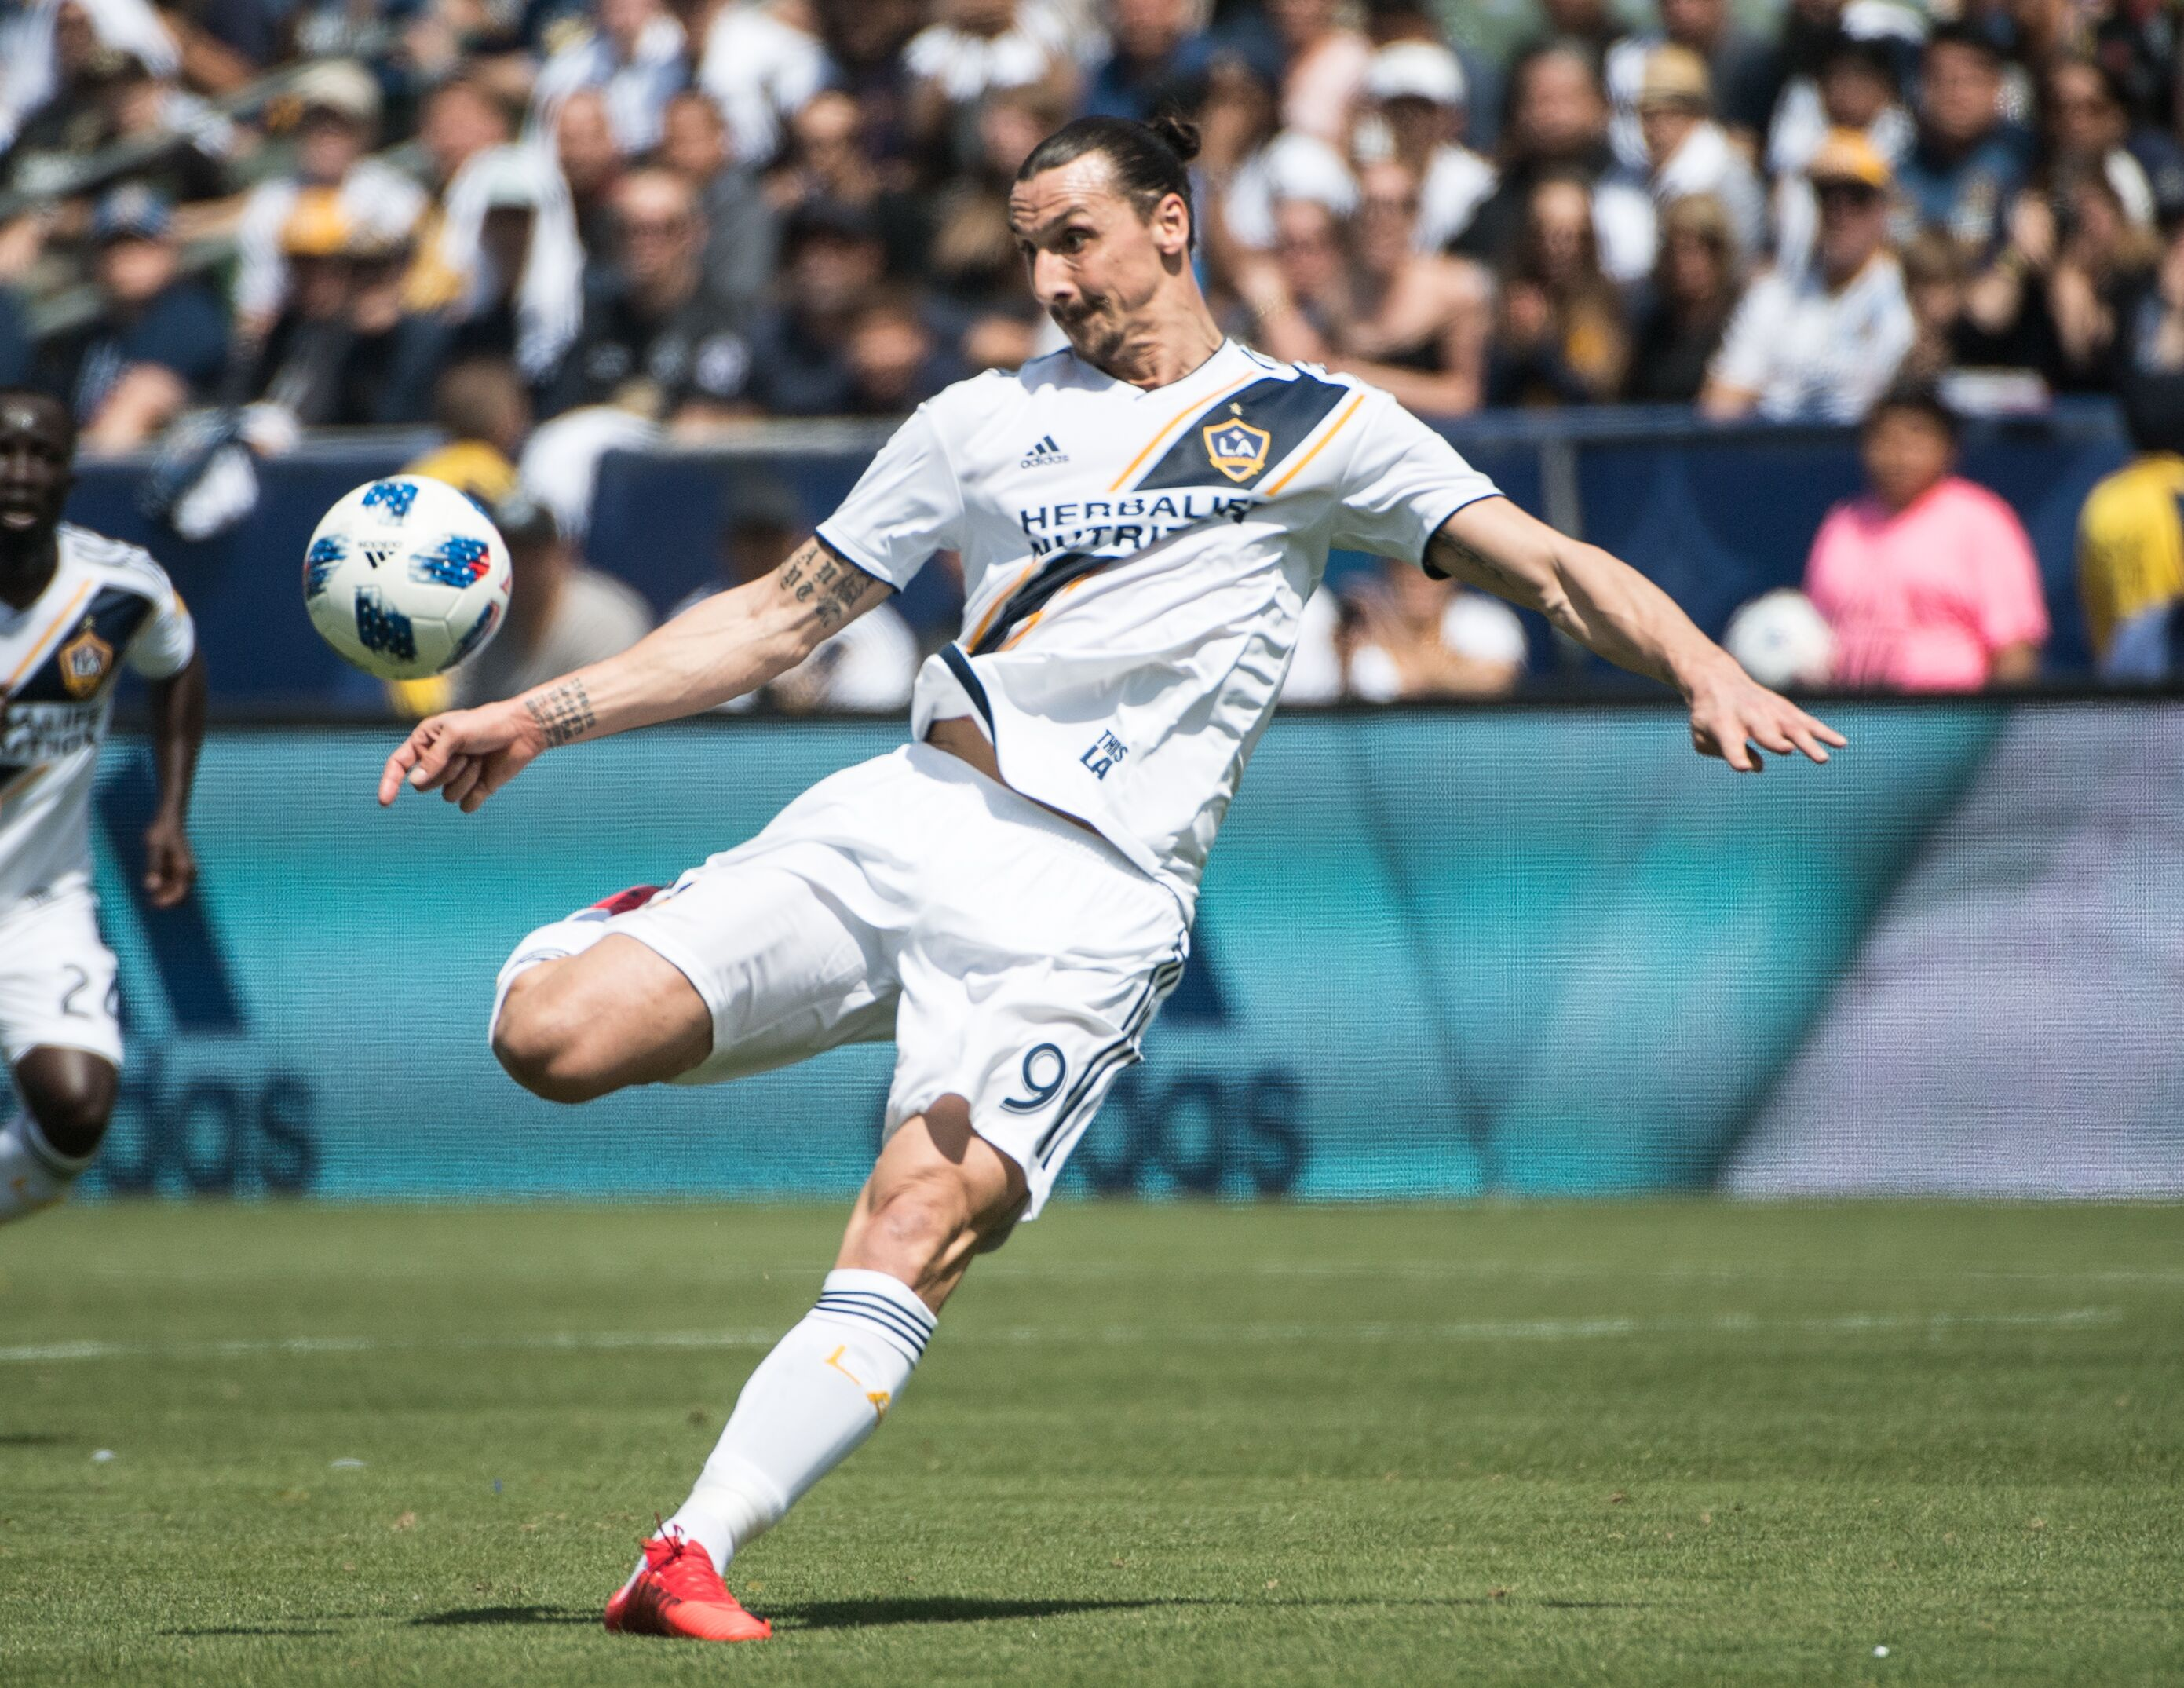 940378872-mls-soccer-los-angeles-galaxy-v-los-angeles-fc.jpg